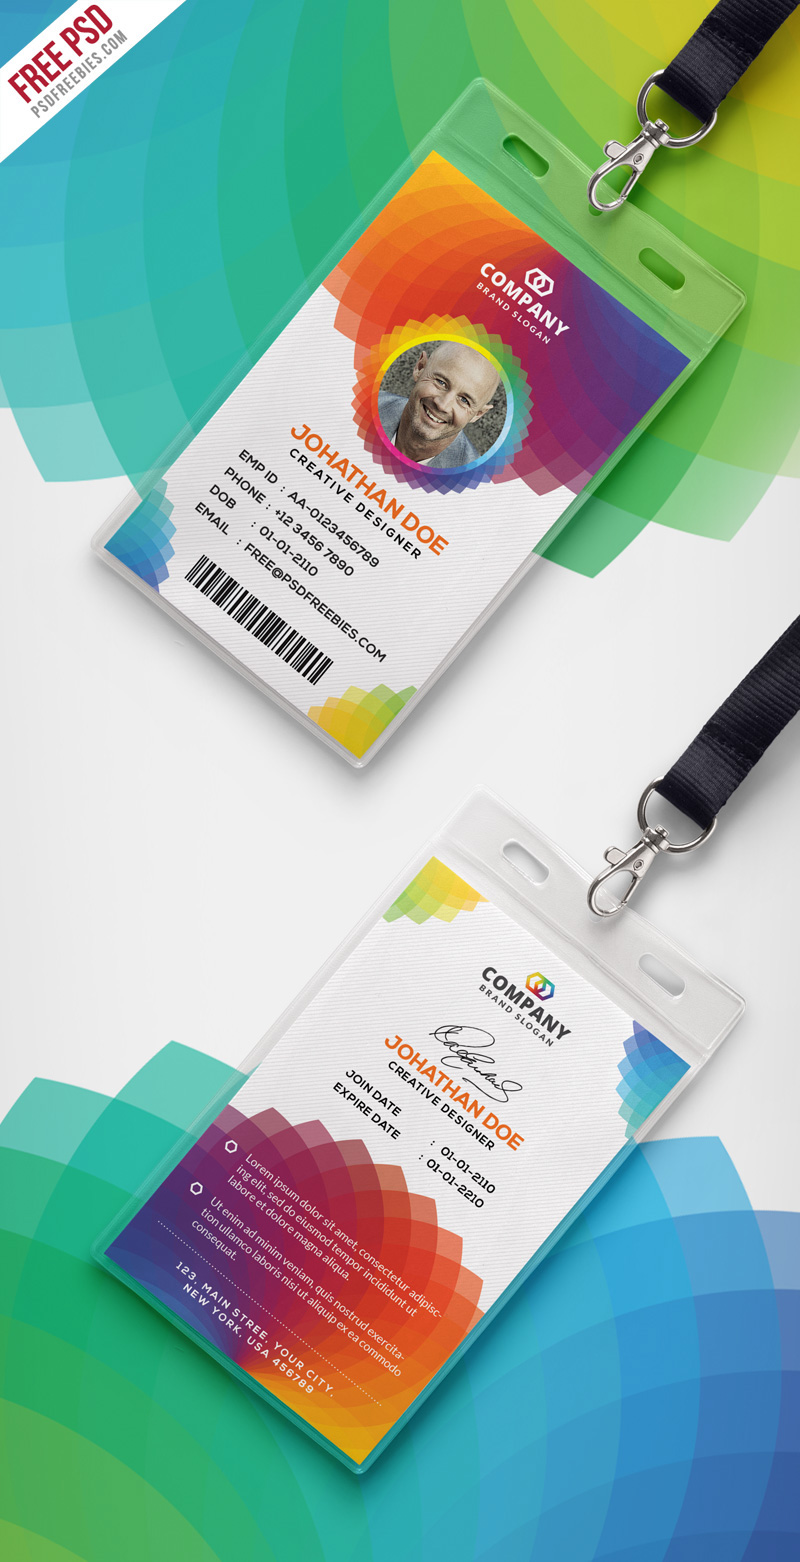 medium resolution of download free corporate branding identity card free psd this free corporate office id card psd template a designed for any types of companies and offices